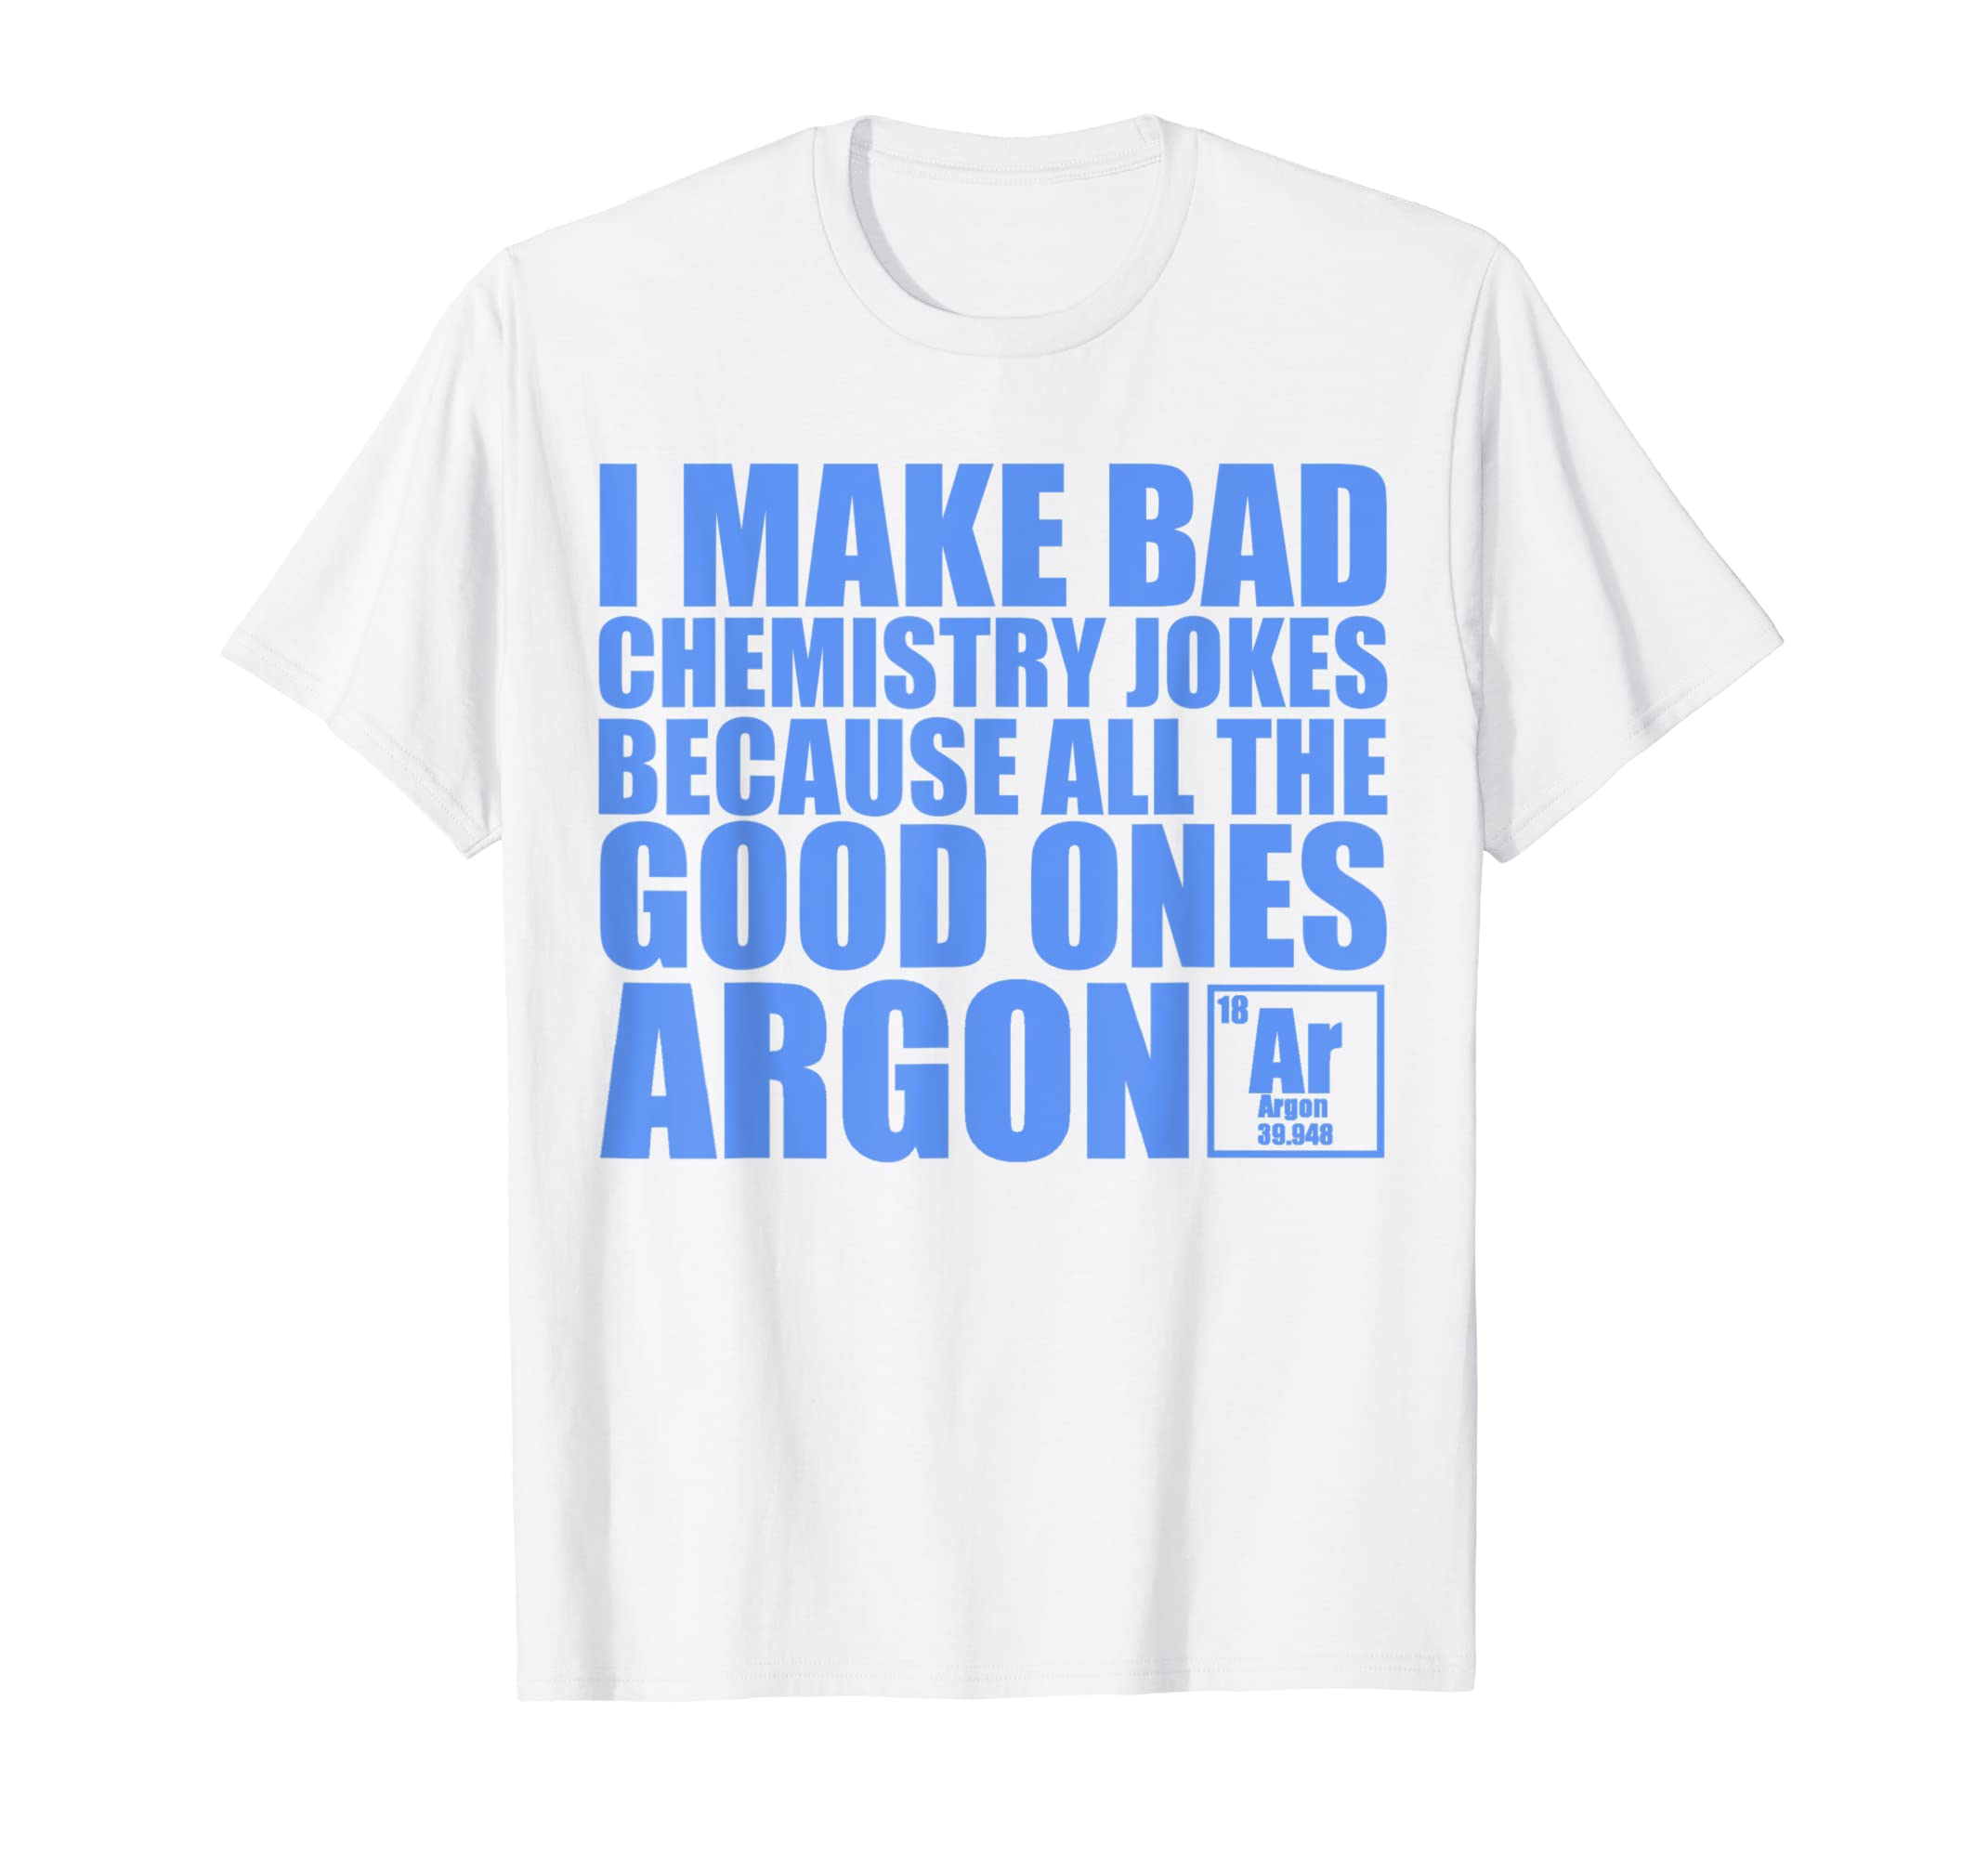 269046d3 Amazon.com: Funny Chemistry Pun Novelty Science T-Shirt for Scientists:  Clothing